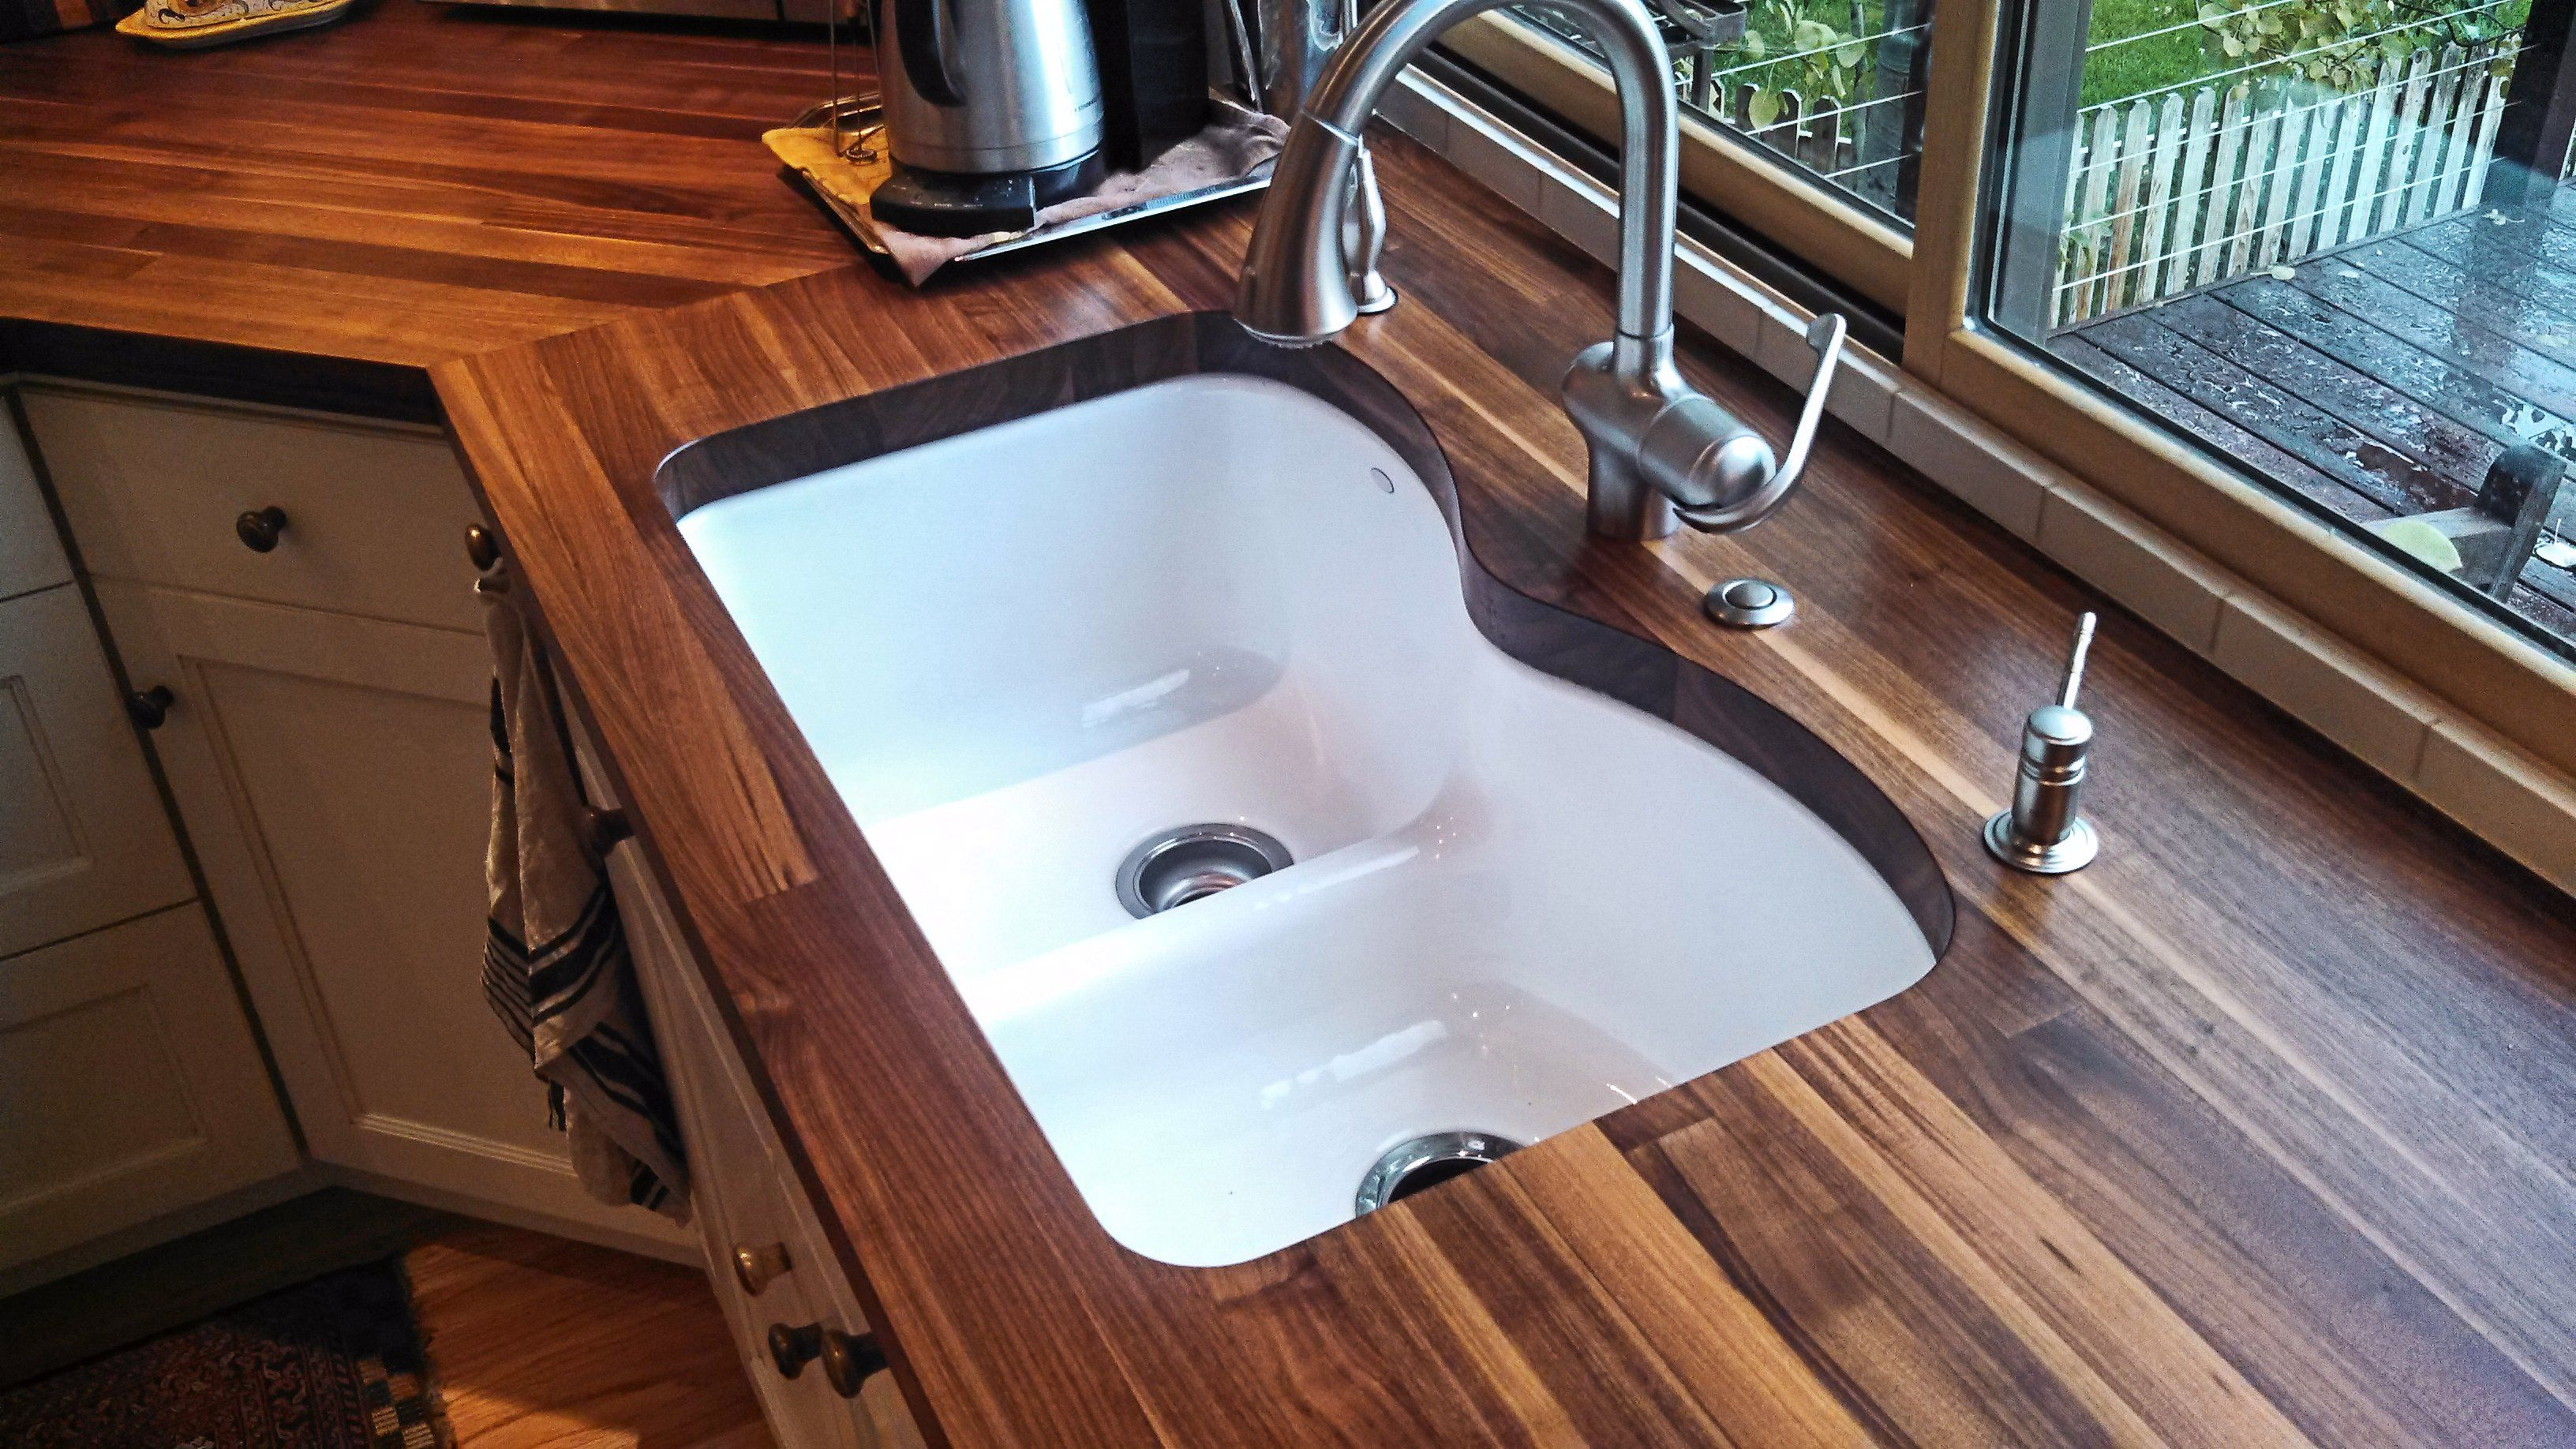 Wood Countertop Finish Options : ... Walnut countertop with undermount sink and Tung-Oil/Citrus finish